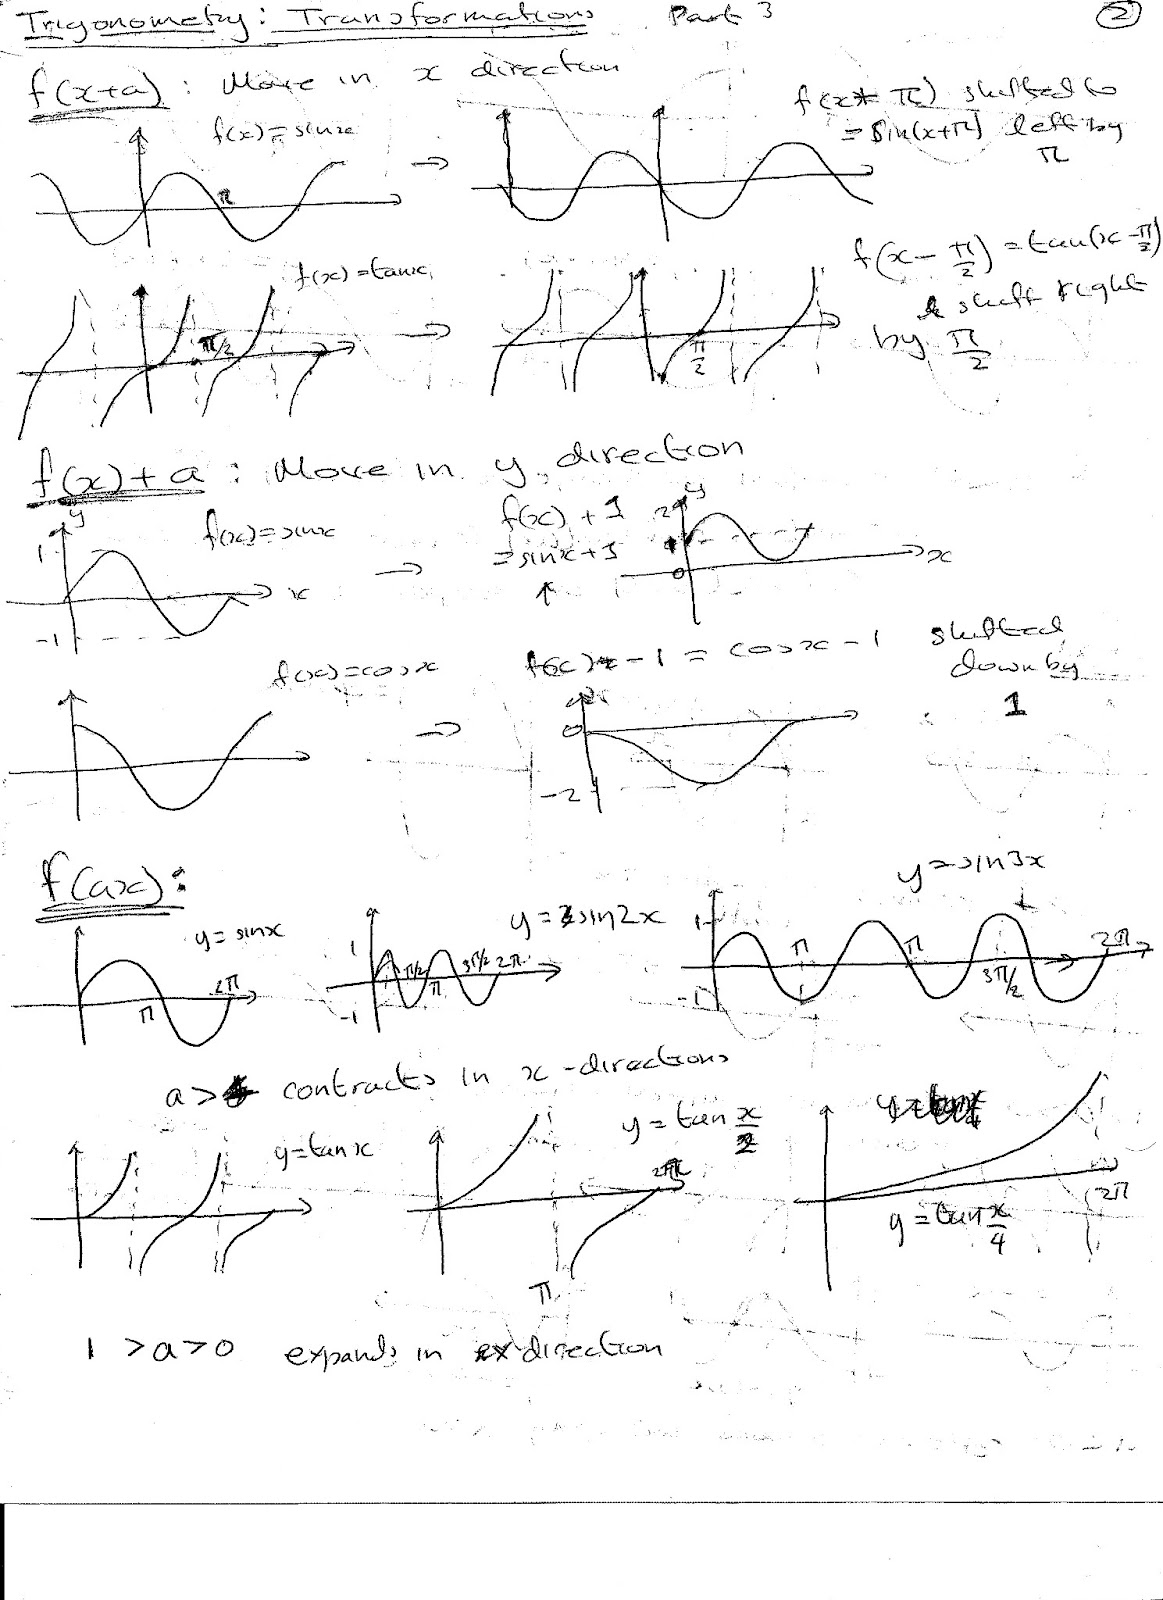 A Level Maths Notes: February 2013